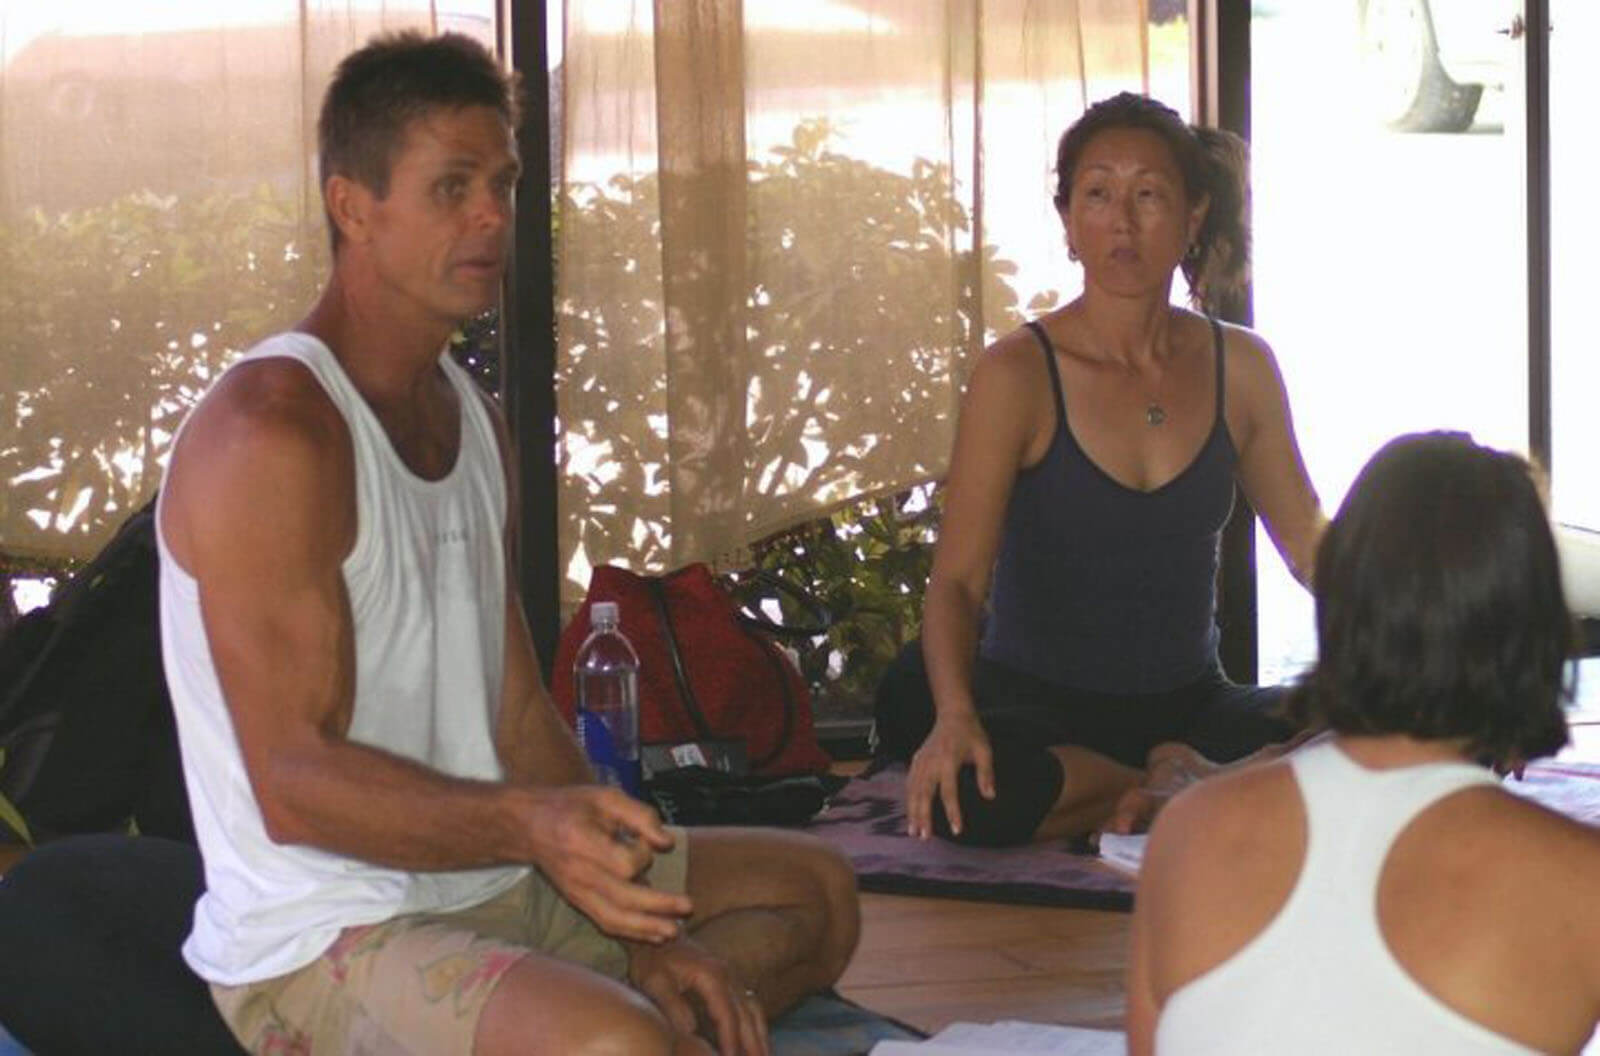 An image of yoga teachers James Kigar and Judy Weaver leading a 200 hour teacher training event.